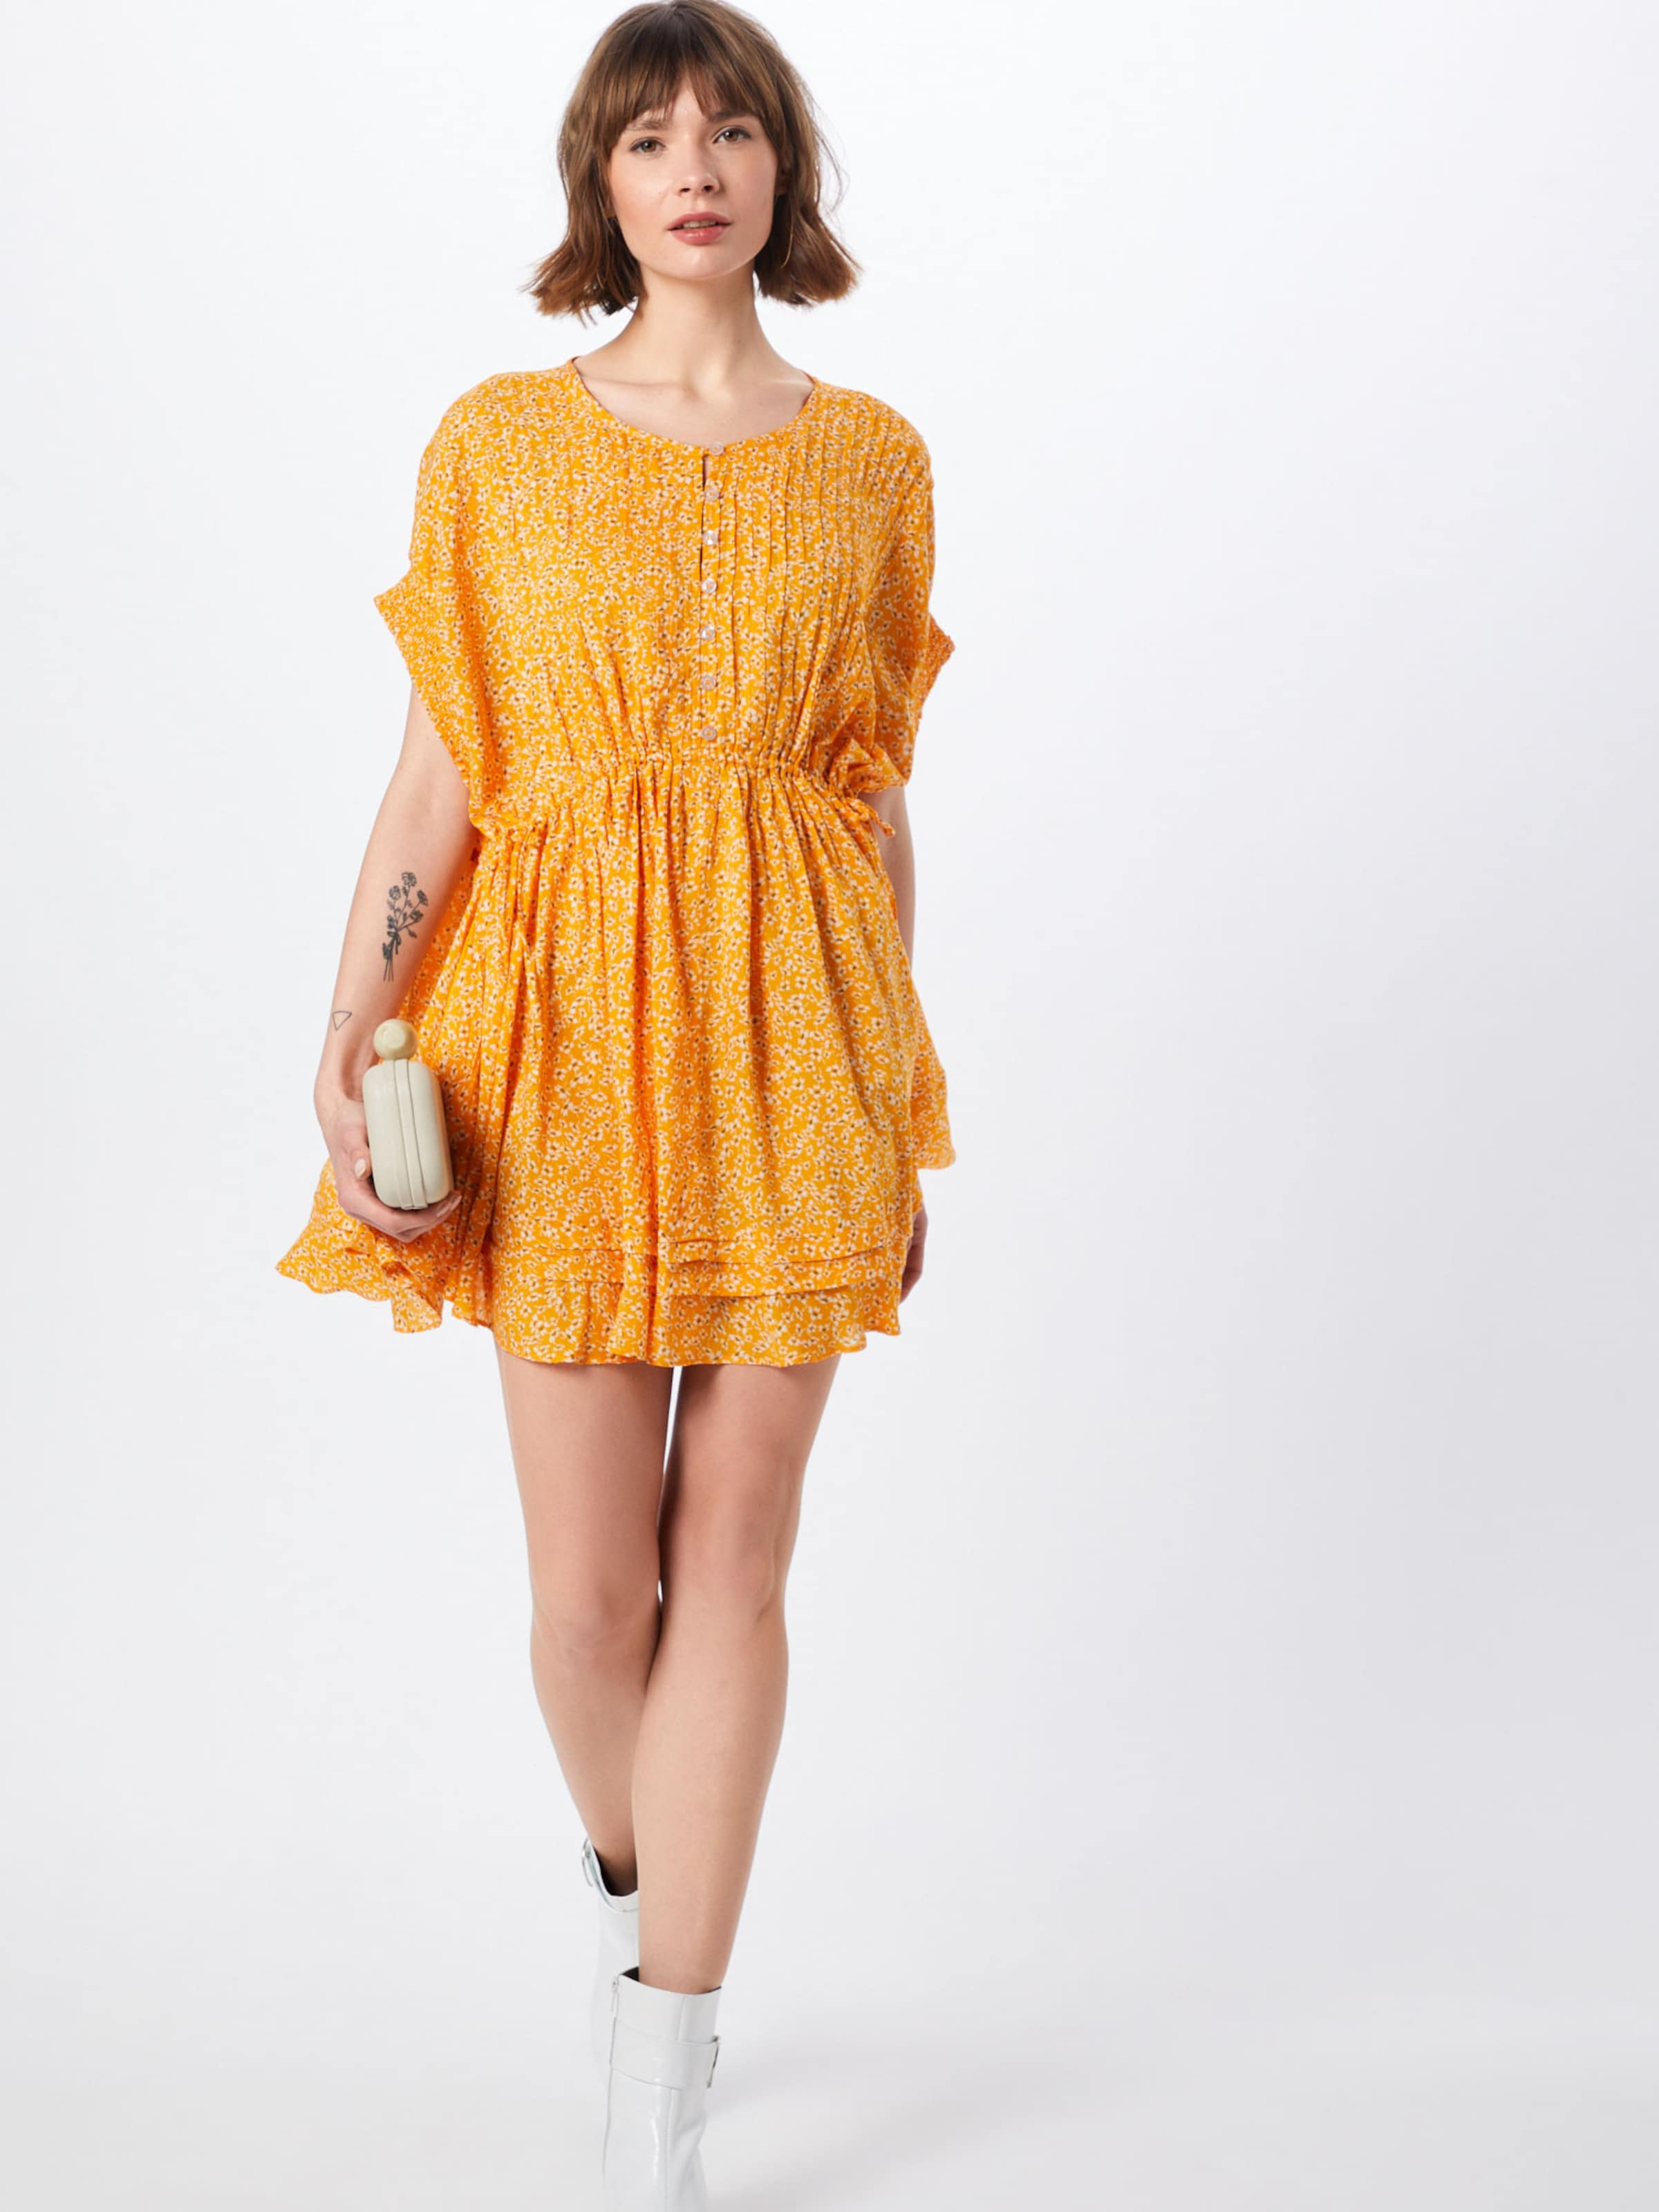 Free Kleid 'one Fine People Goldgelb In Mini' Day Xn0wkP8O